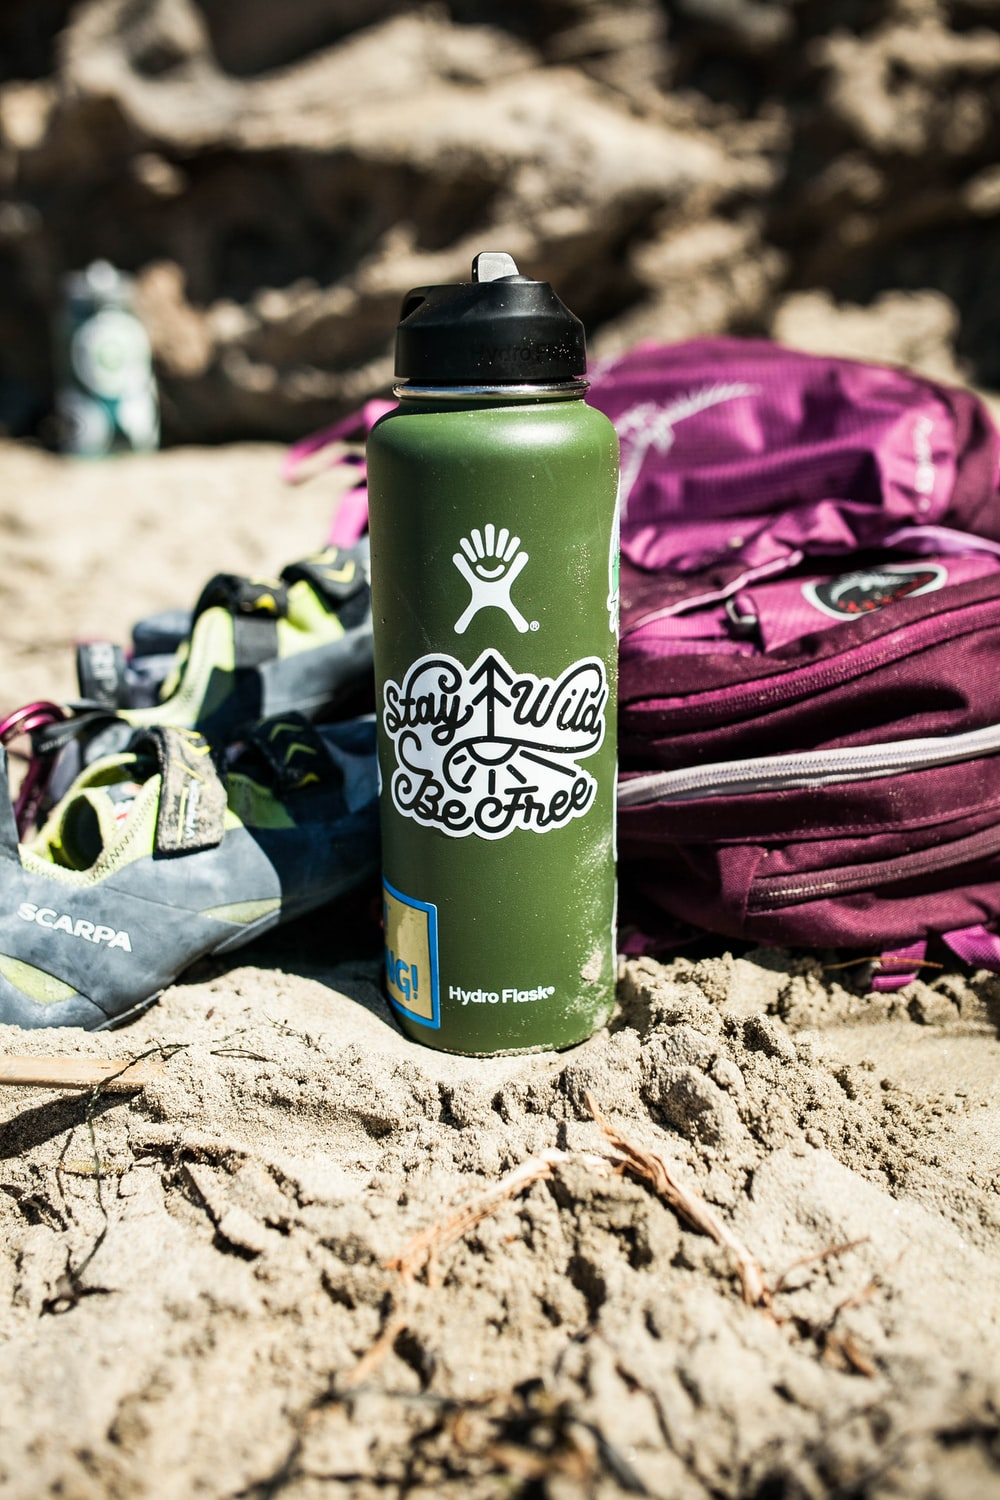 green stainless steel water tumbler besides pink backpack